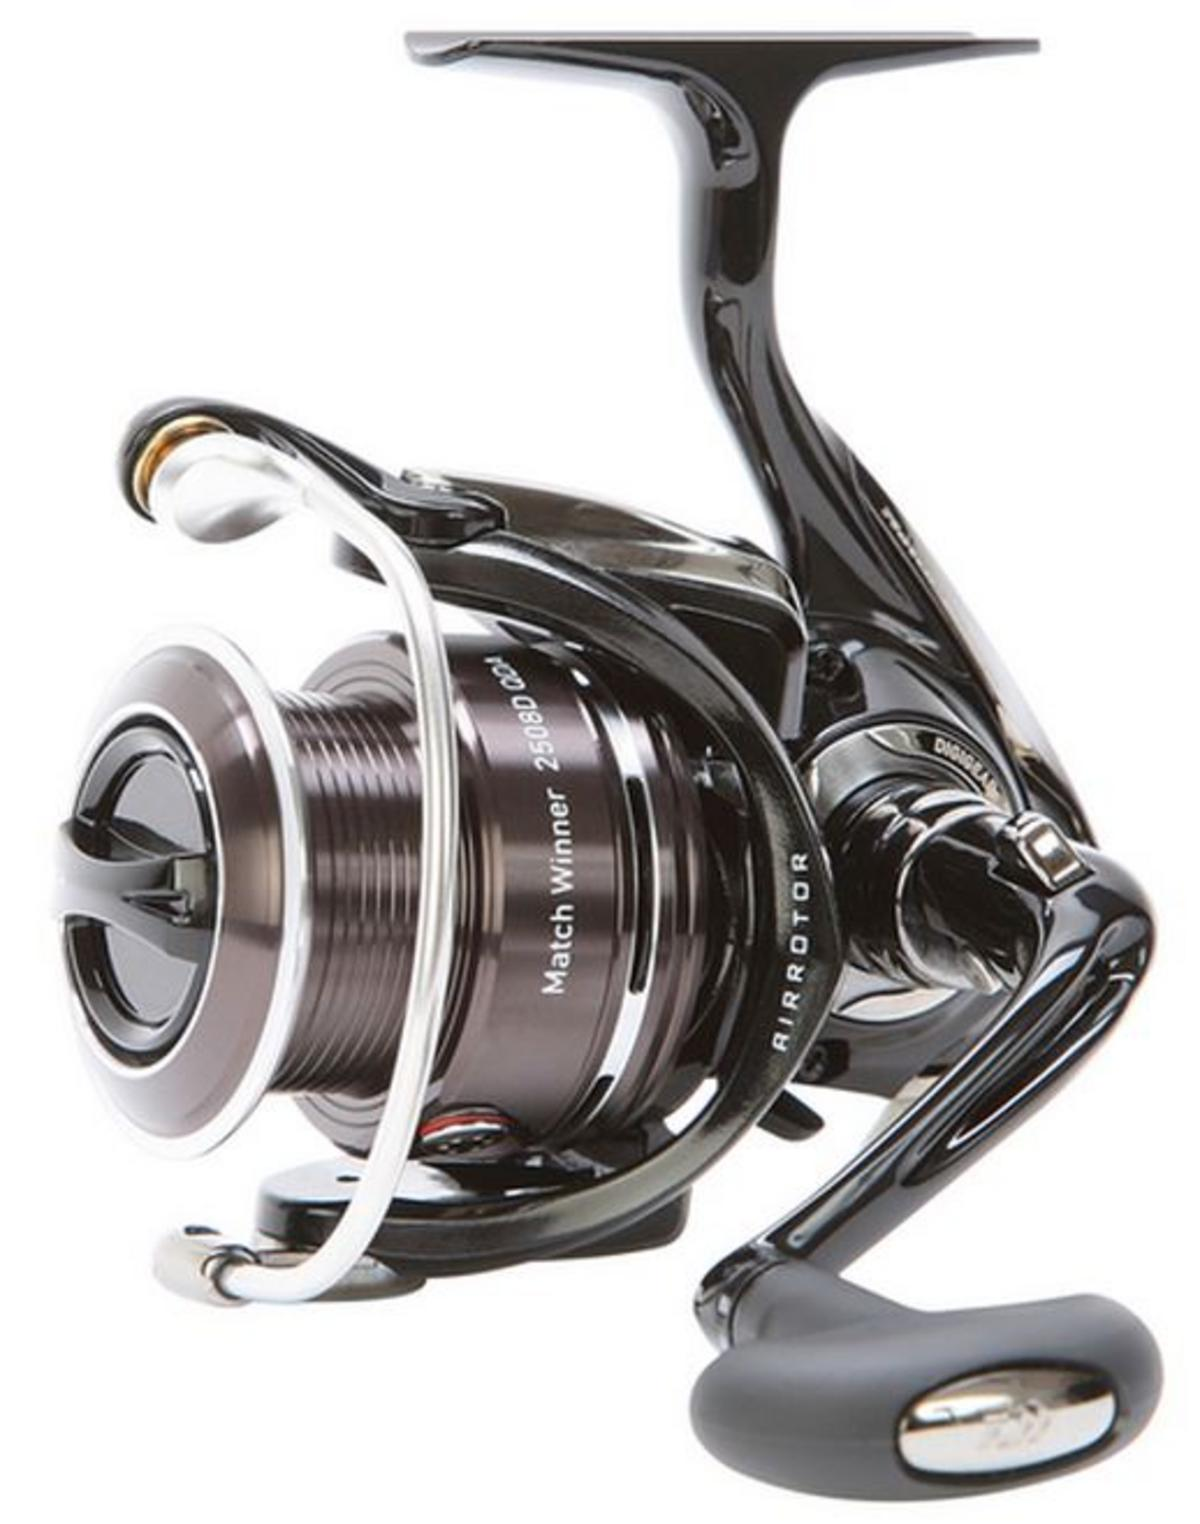 NEW DAIWA MATCH WINNER 4012 QDA FISHING REEL MODEL No. MW4012A